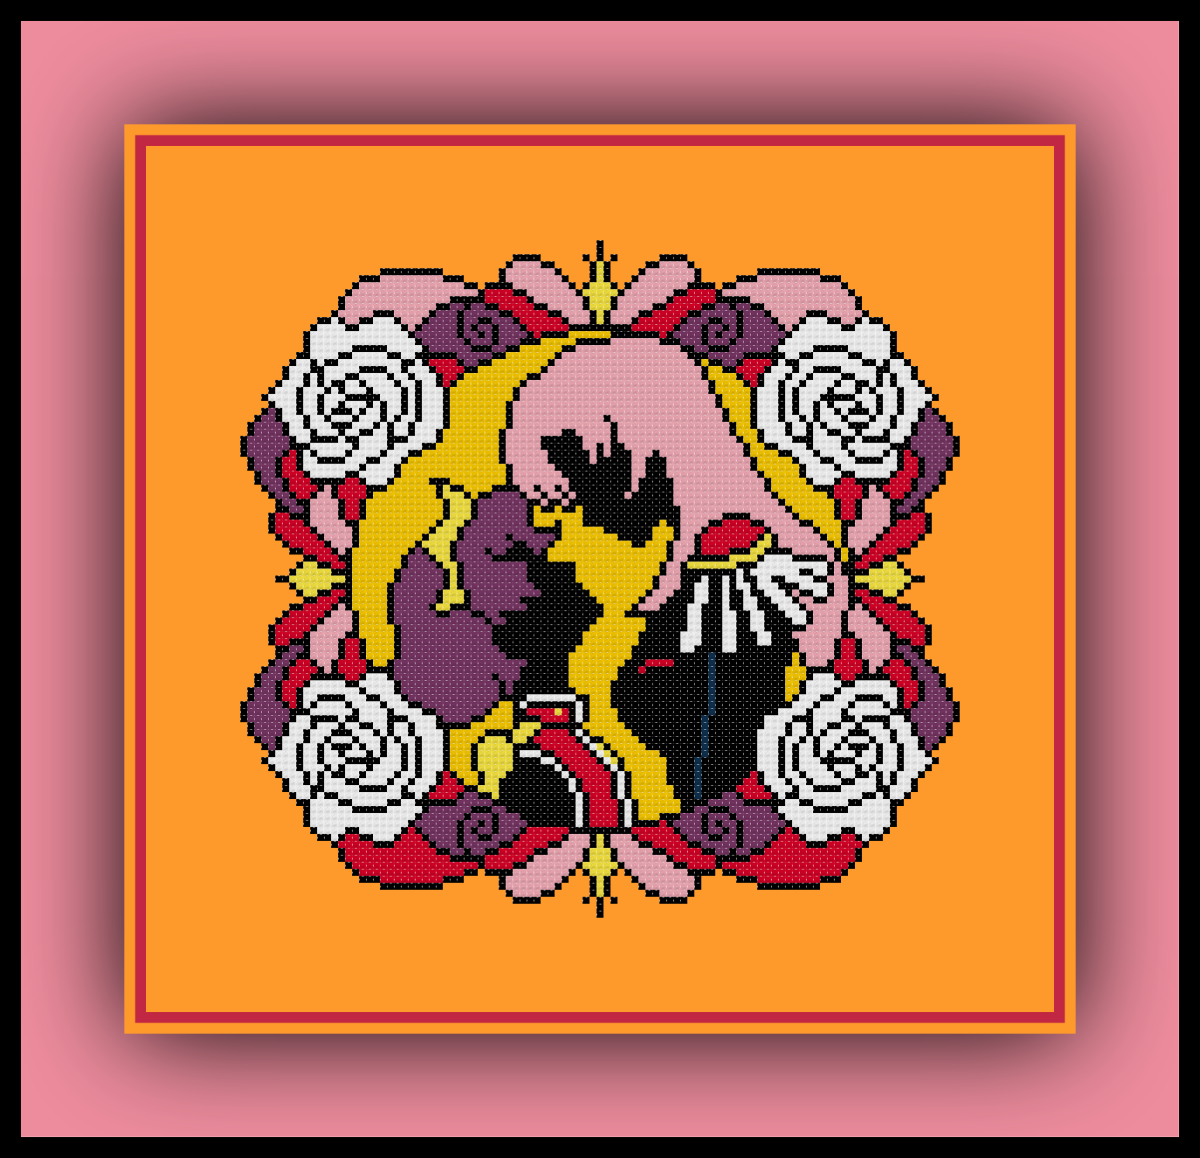 Free Revolutionary Girl Utena Cross Stitch Pattern Utena and Anthy Silhouette